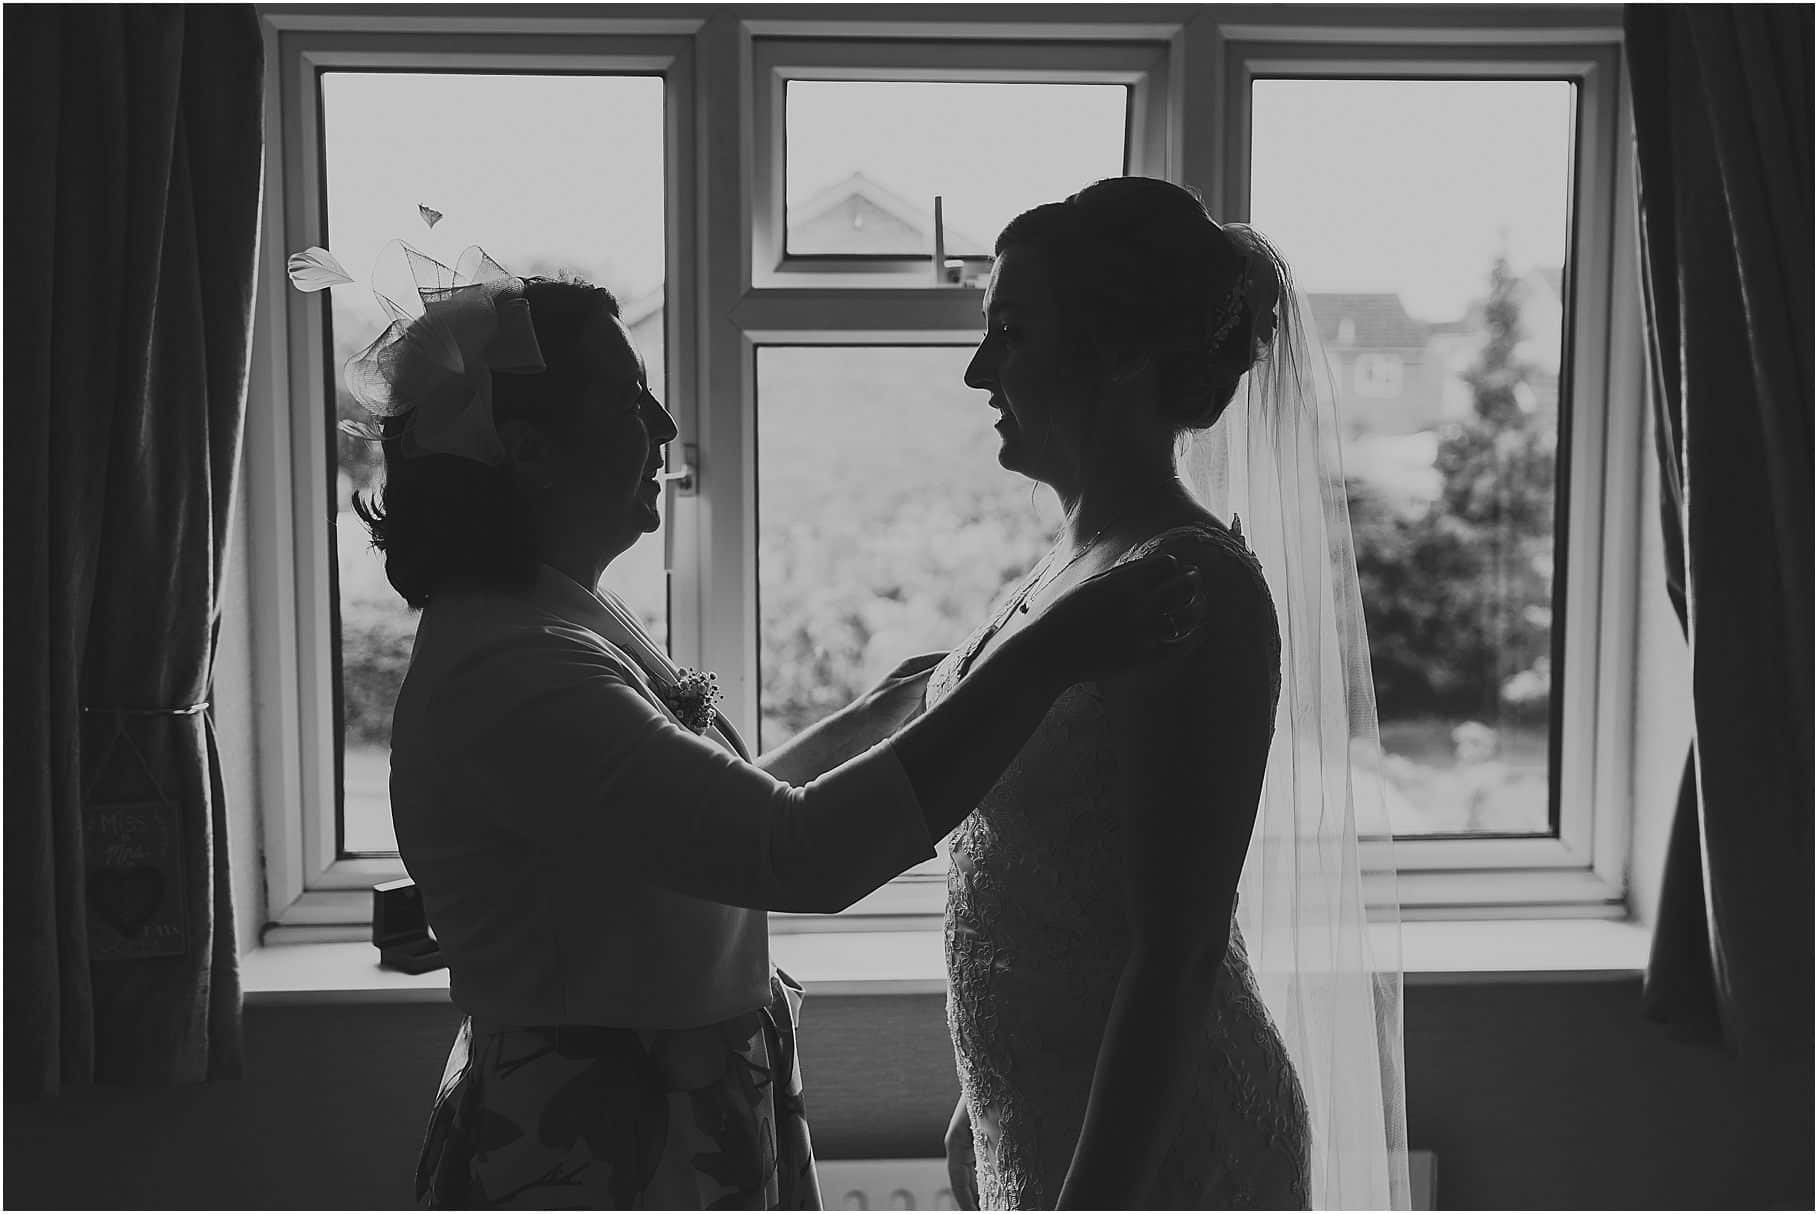 Rutland Weddings Exton Hall Exton Oakham Rutland Water Photographer 1026 - Mr and Mrs Barker // RUTLAND WEDDING